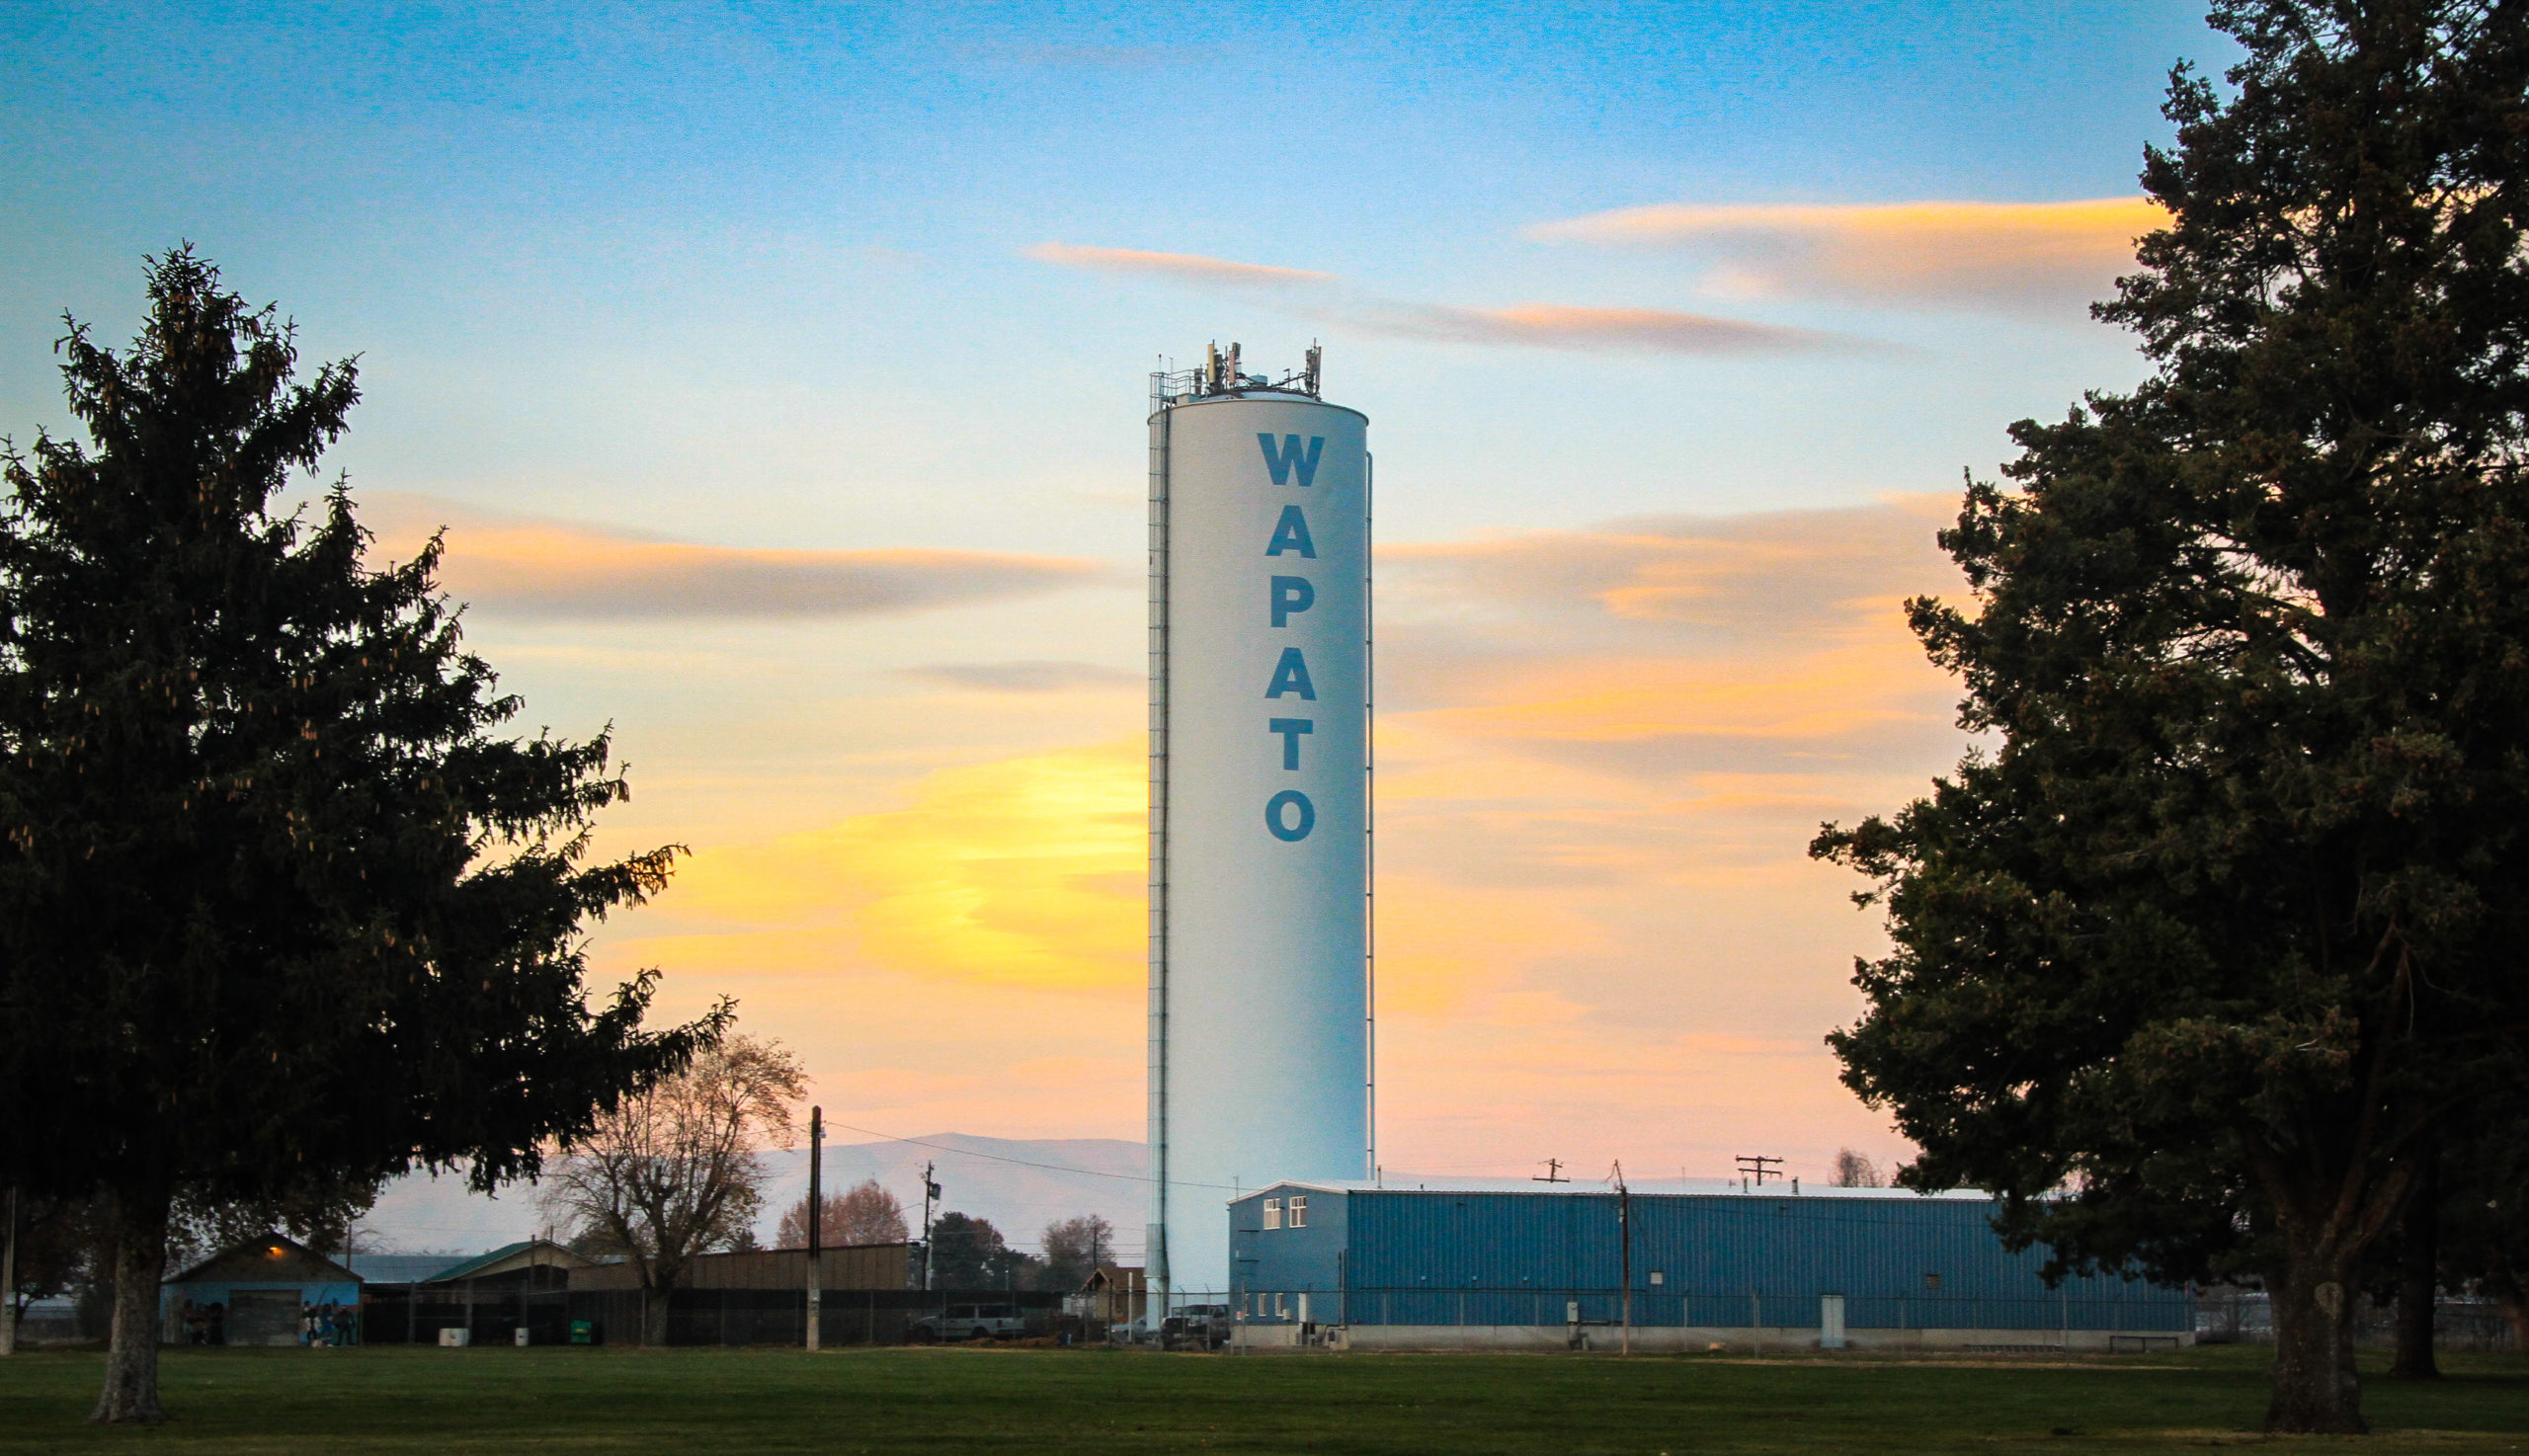 City of Wapato